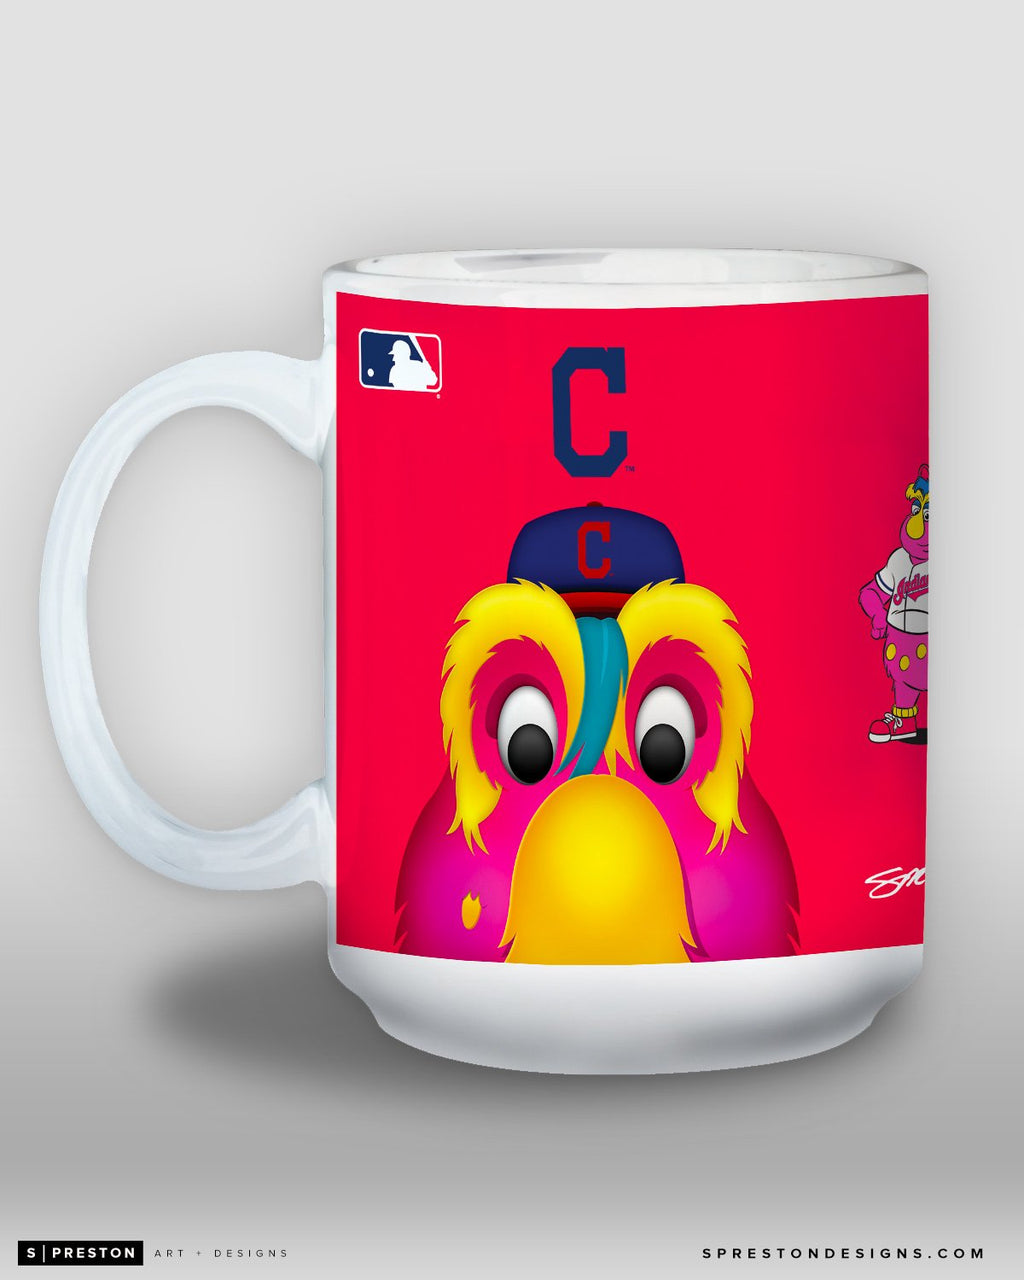 Minimalist Slider Coffee Mug - MLB Licensed - Cleveland Indians Mascot